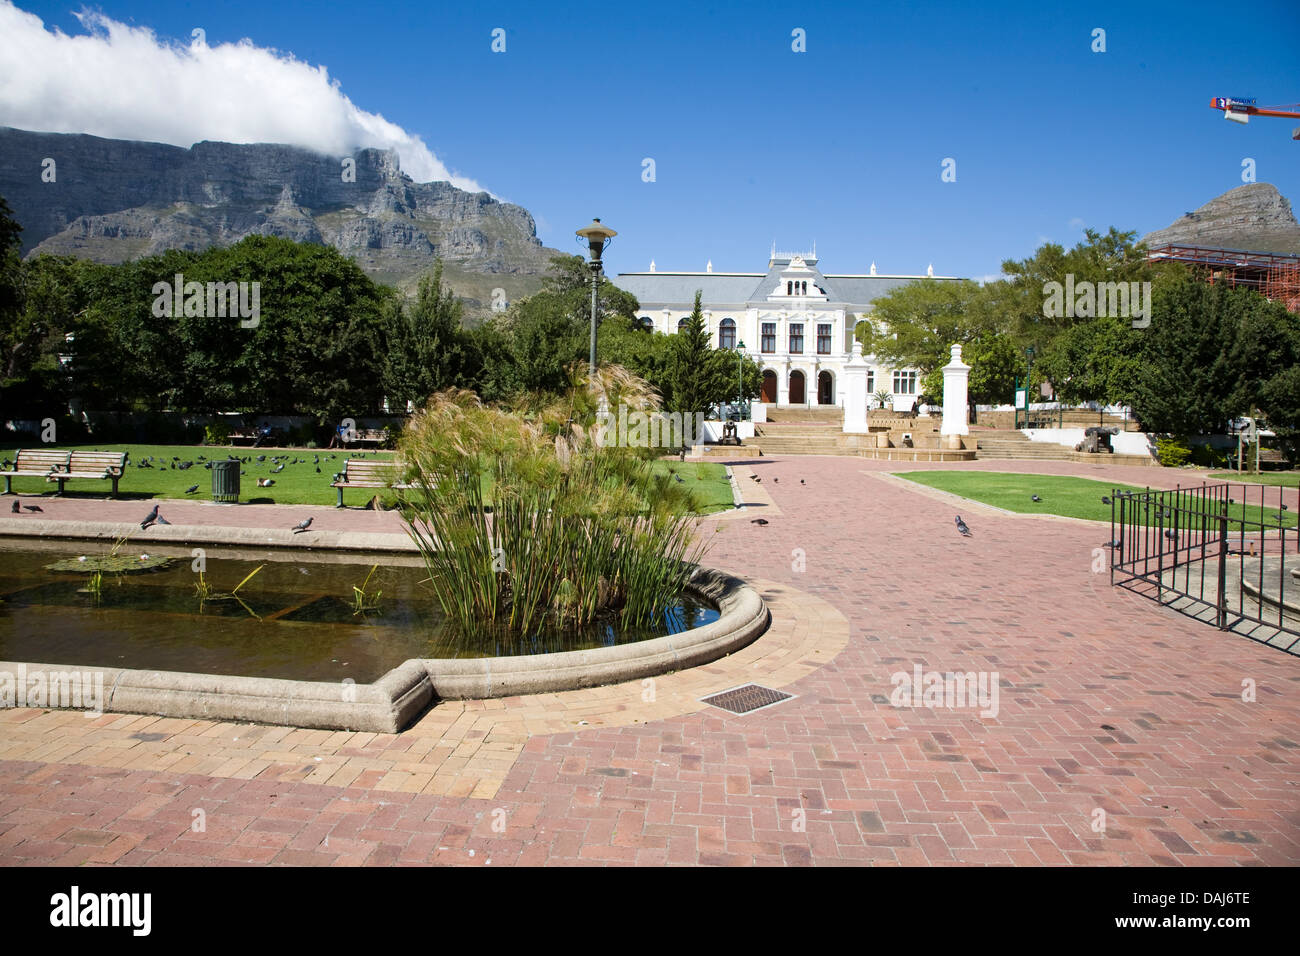 The Dutch East India Company Gardens in Cape Town. The large building in the background is the South African Museum - Stock Image